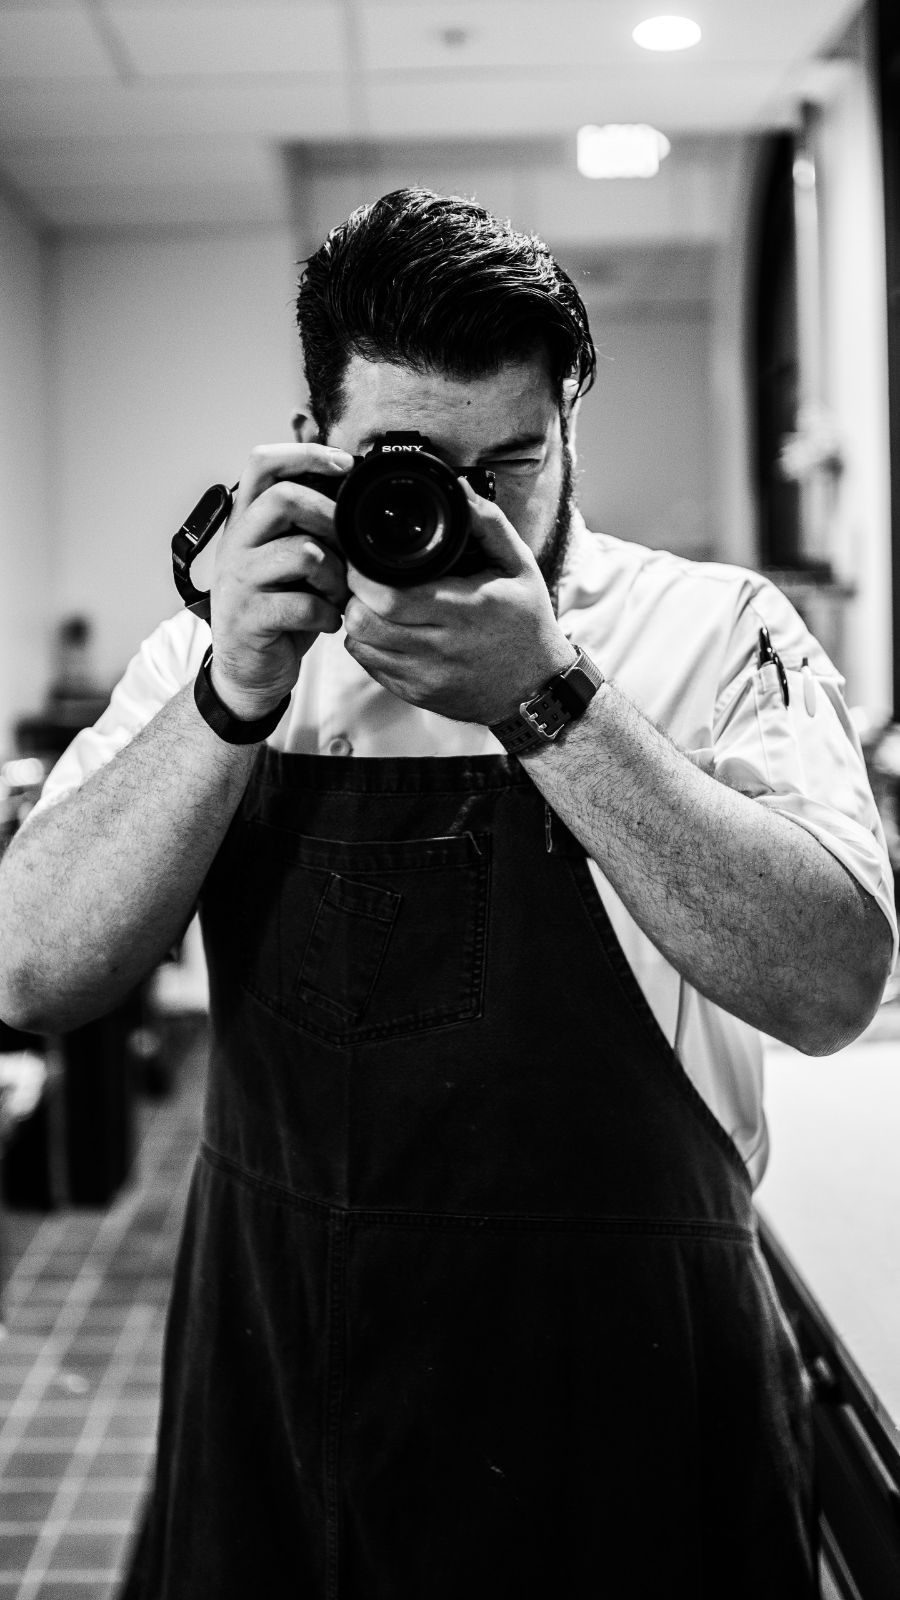 Introducing Lionfish's Robert Reyes – Sushi Chef and Photographer Extraordinaire